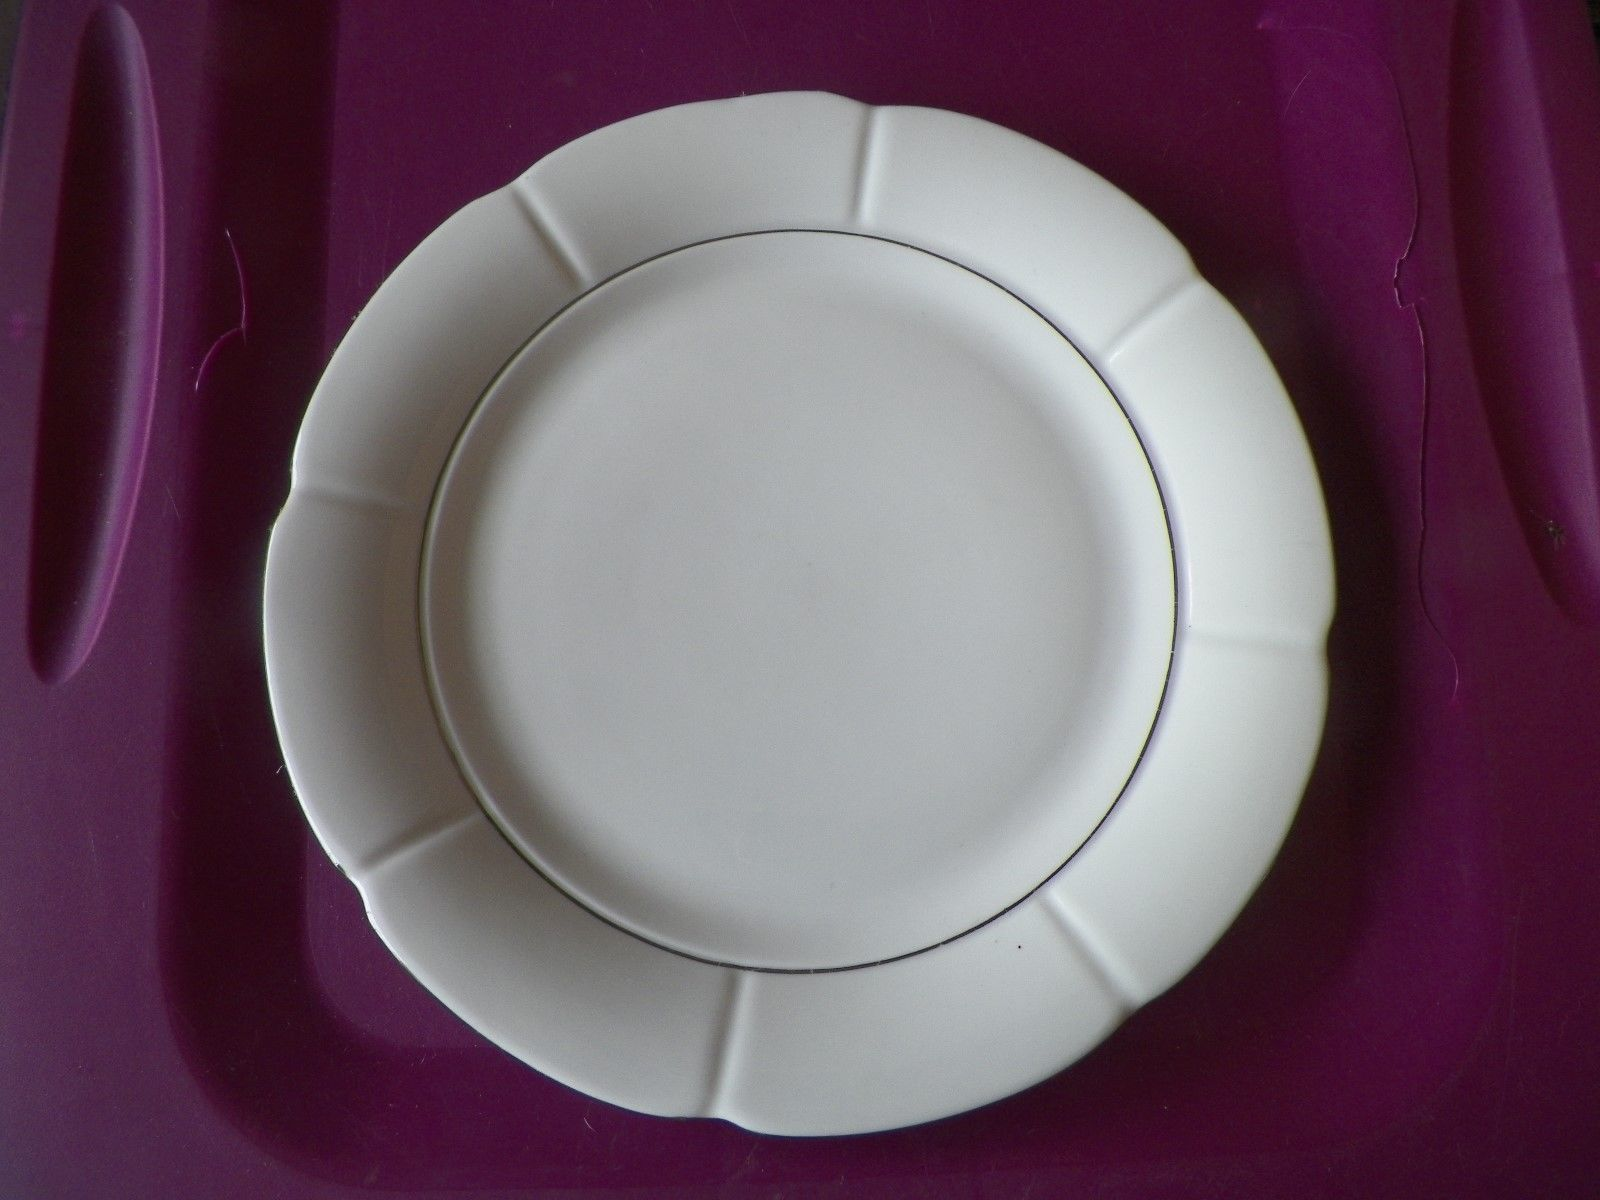 Primary image for Tabletops unlimited Venetian Silver dinner plate 4 available